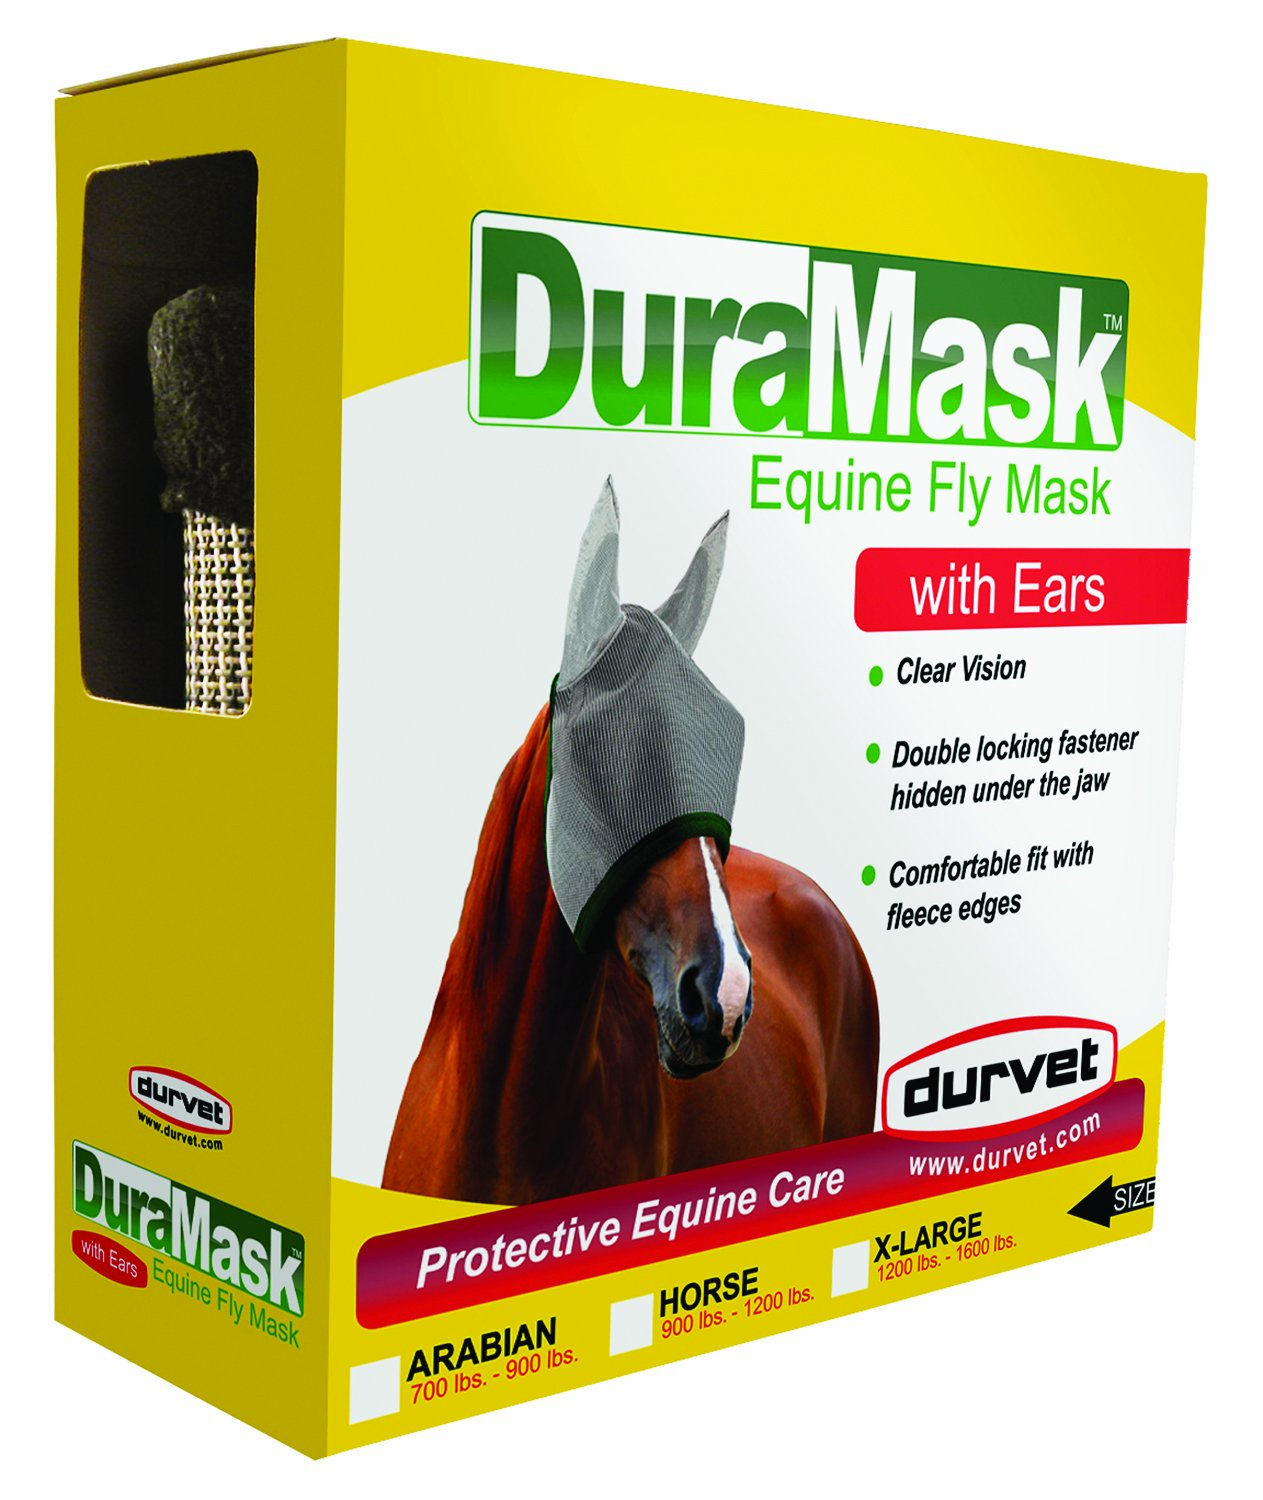 DURVET FLY D 698742 Duramask Fly Mask with Ears, X-Large